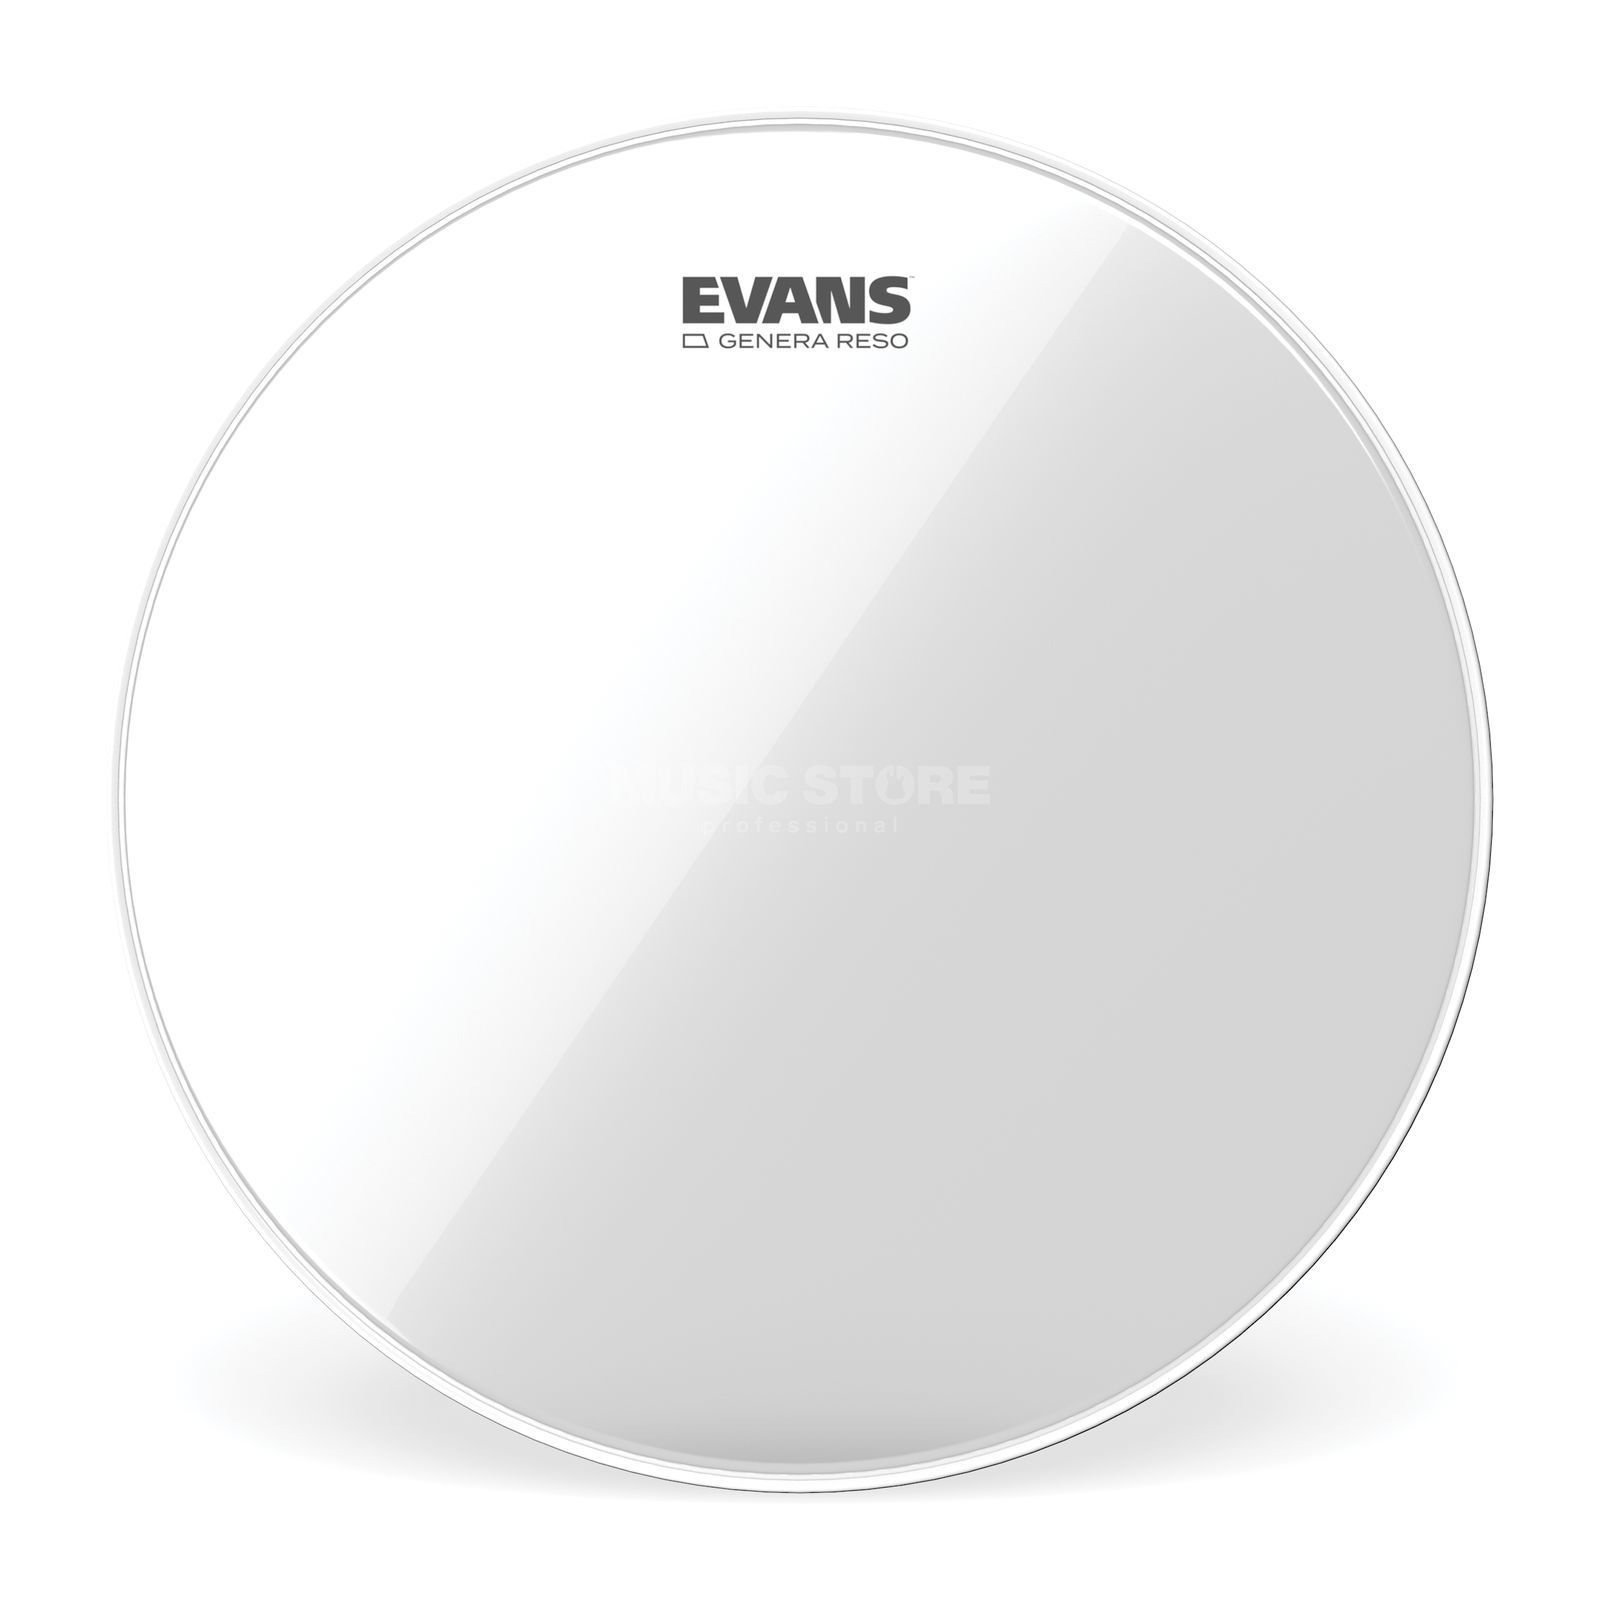 "Evans Genera Resonant TT15GR 15"", peau de résonance tom, B-Stock Image du produit"